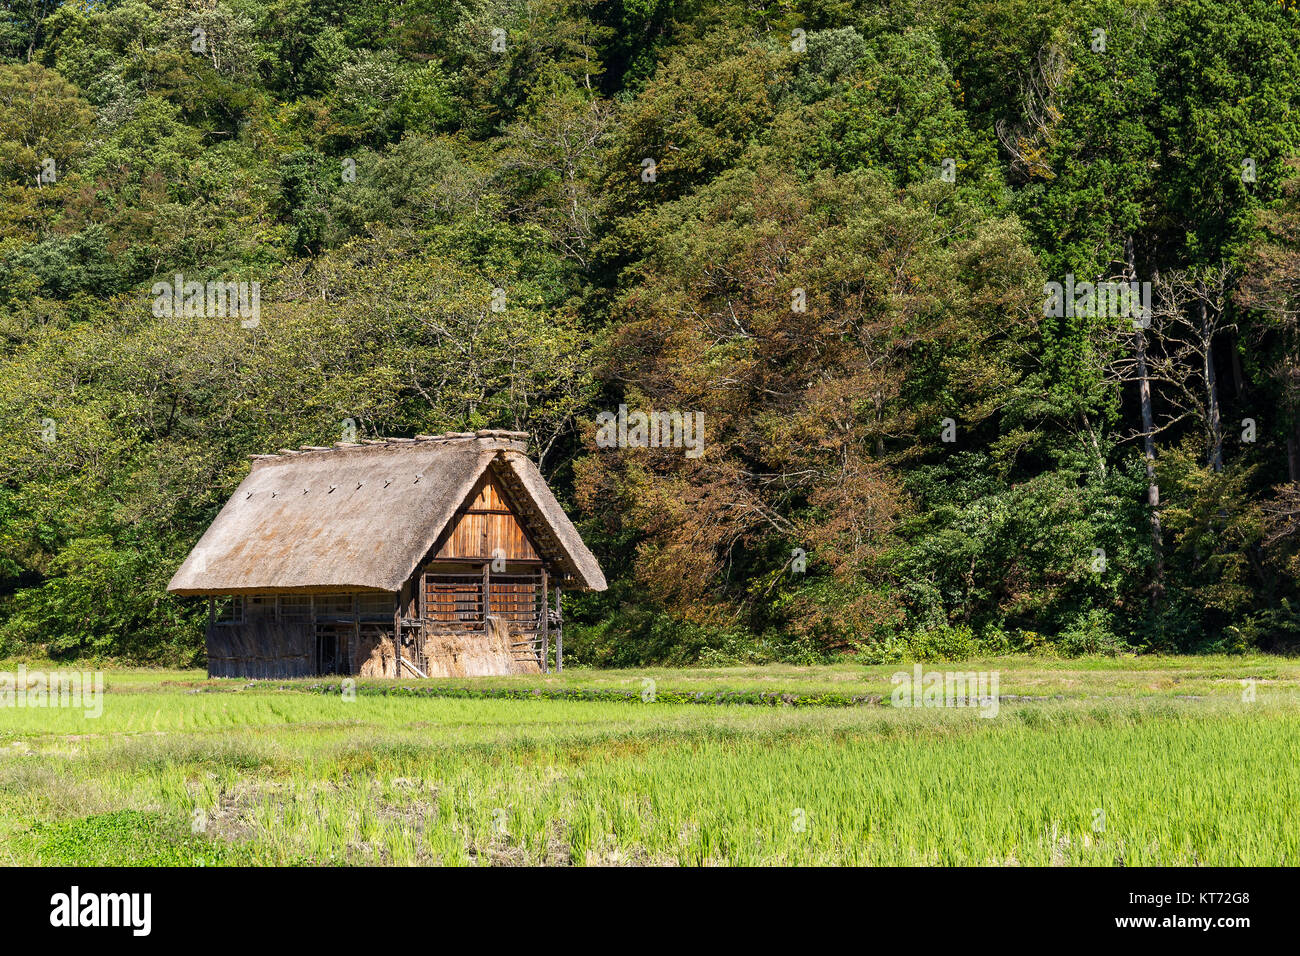 Old wooden house mountain forest stock photos old wooden for Traditionelles thai haus